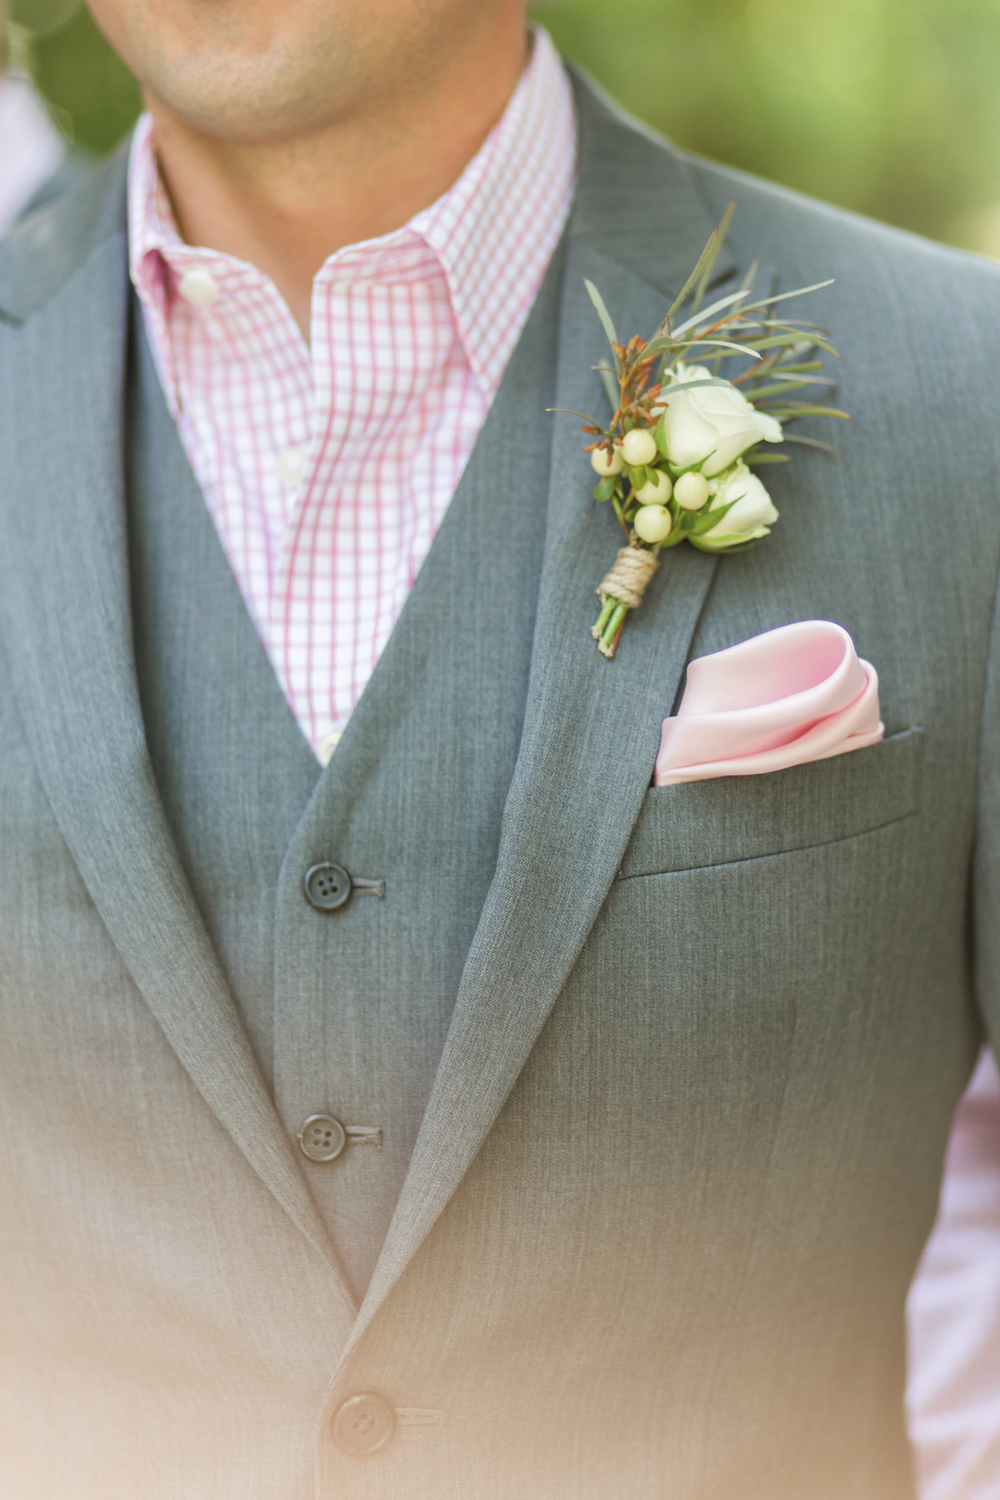 oklahoma wedding photographer pasture at willows ranch broken bow groom details boutonnière